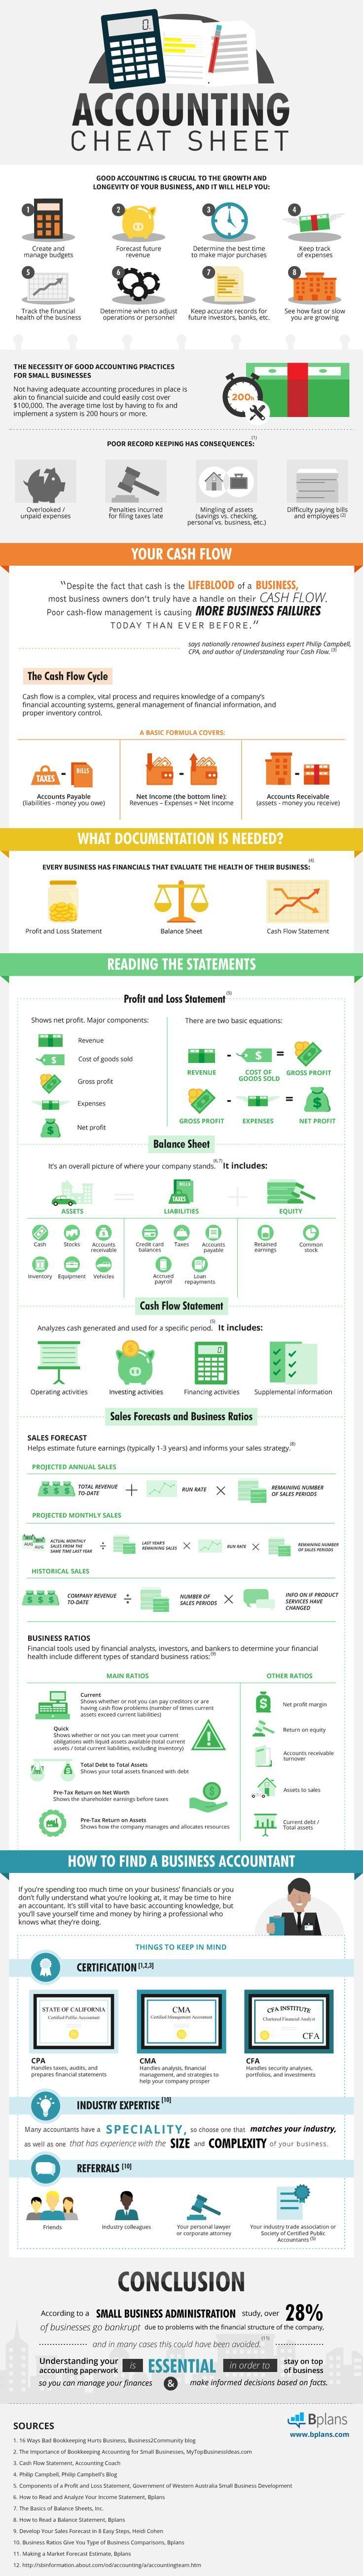 Accounting-Basics-Cheat-Sheet.